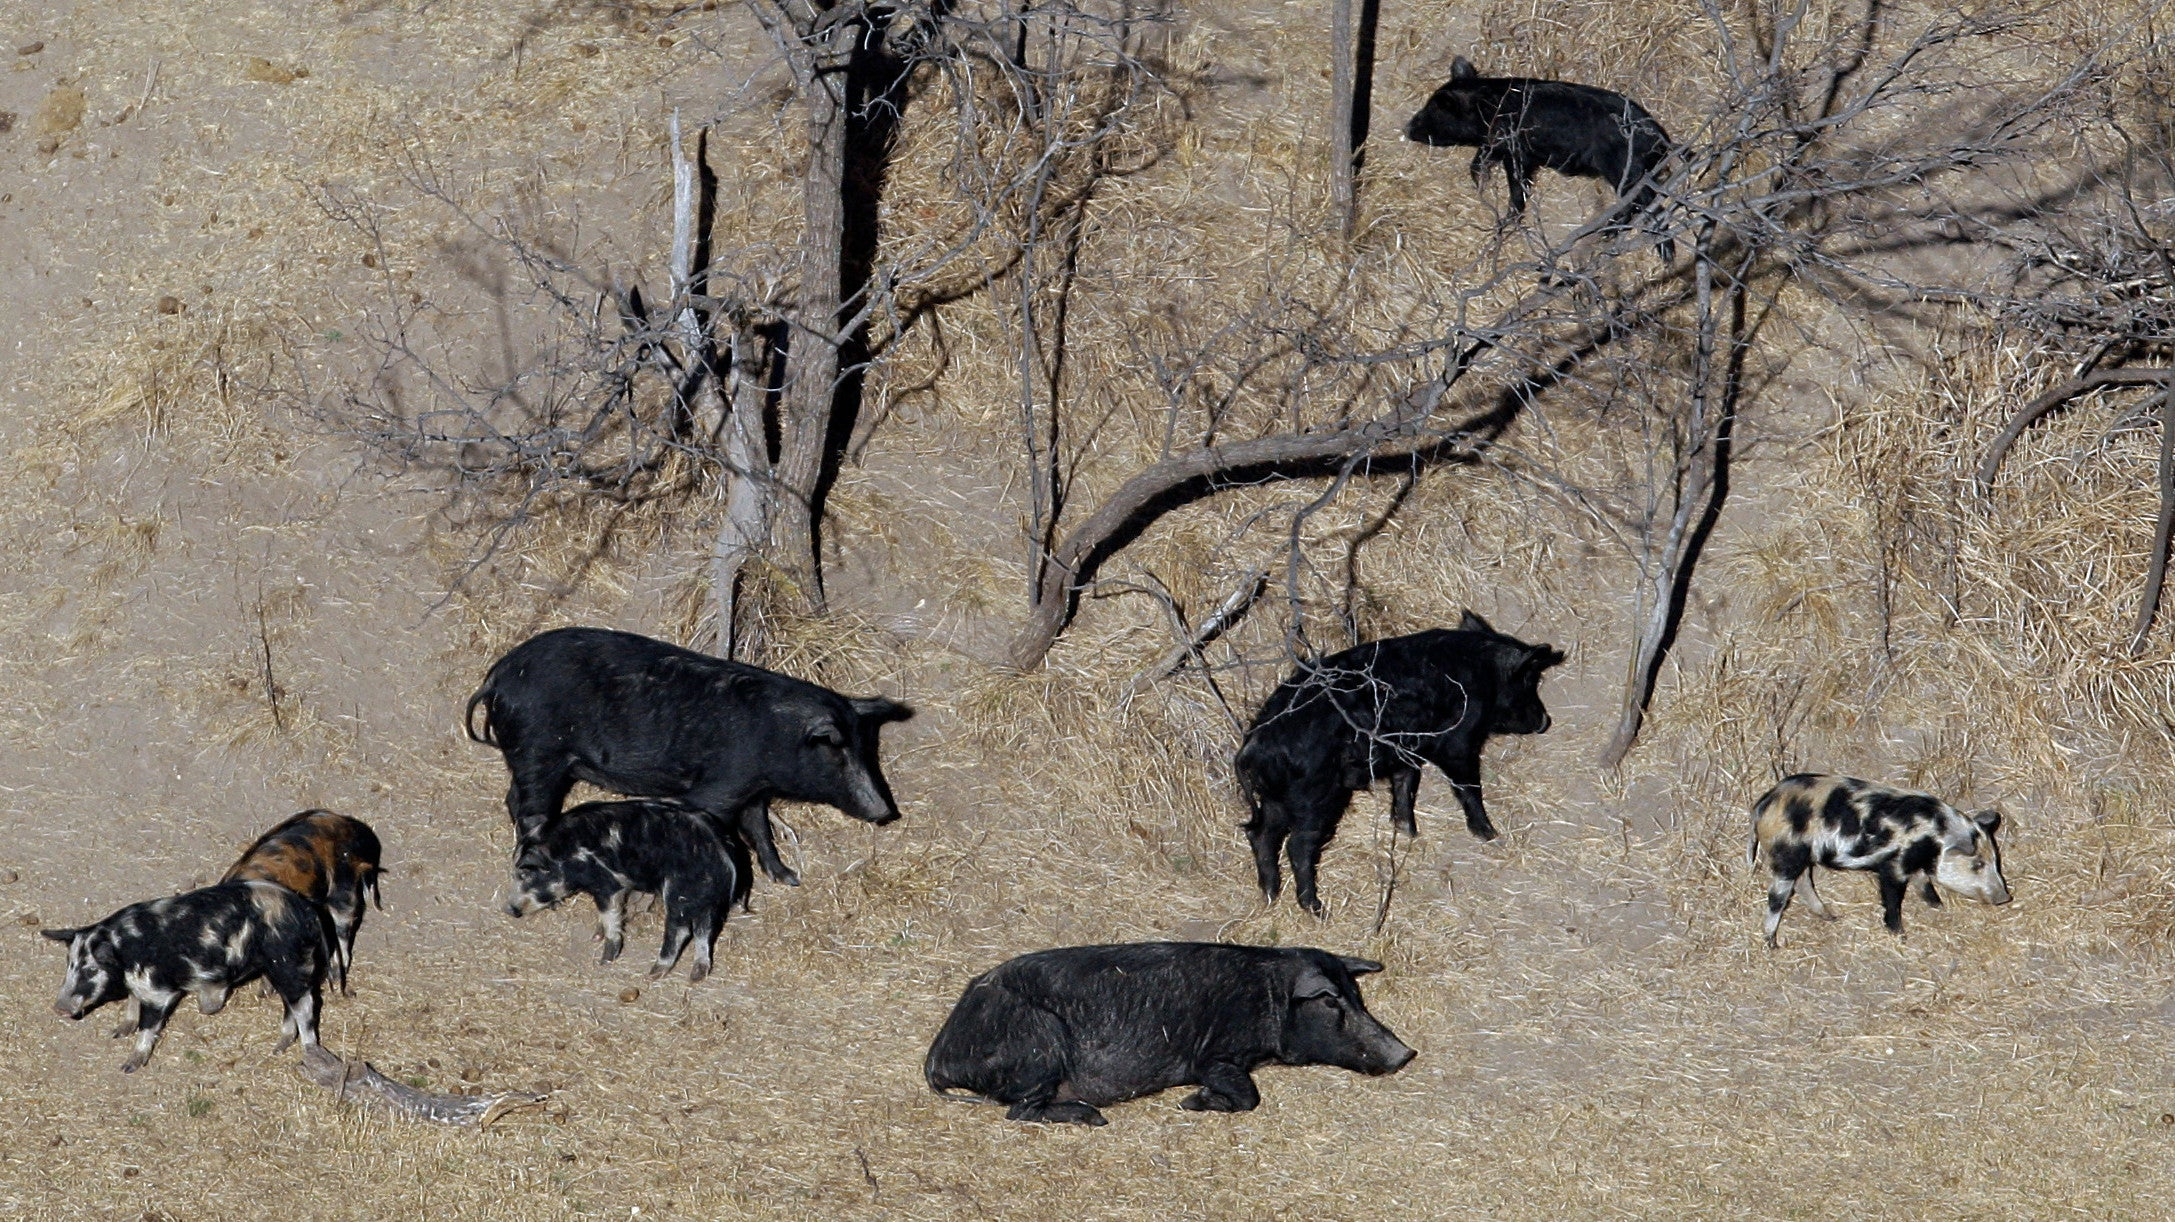 If You Think 30-50 Feral Hogs Sounds Bad, Just Wait